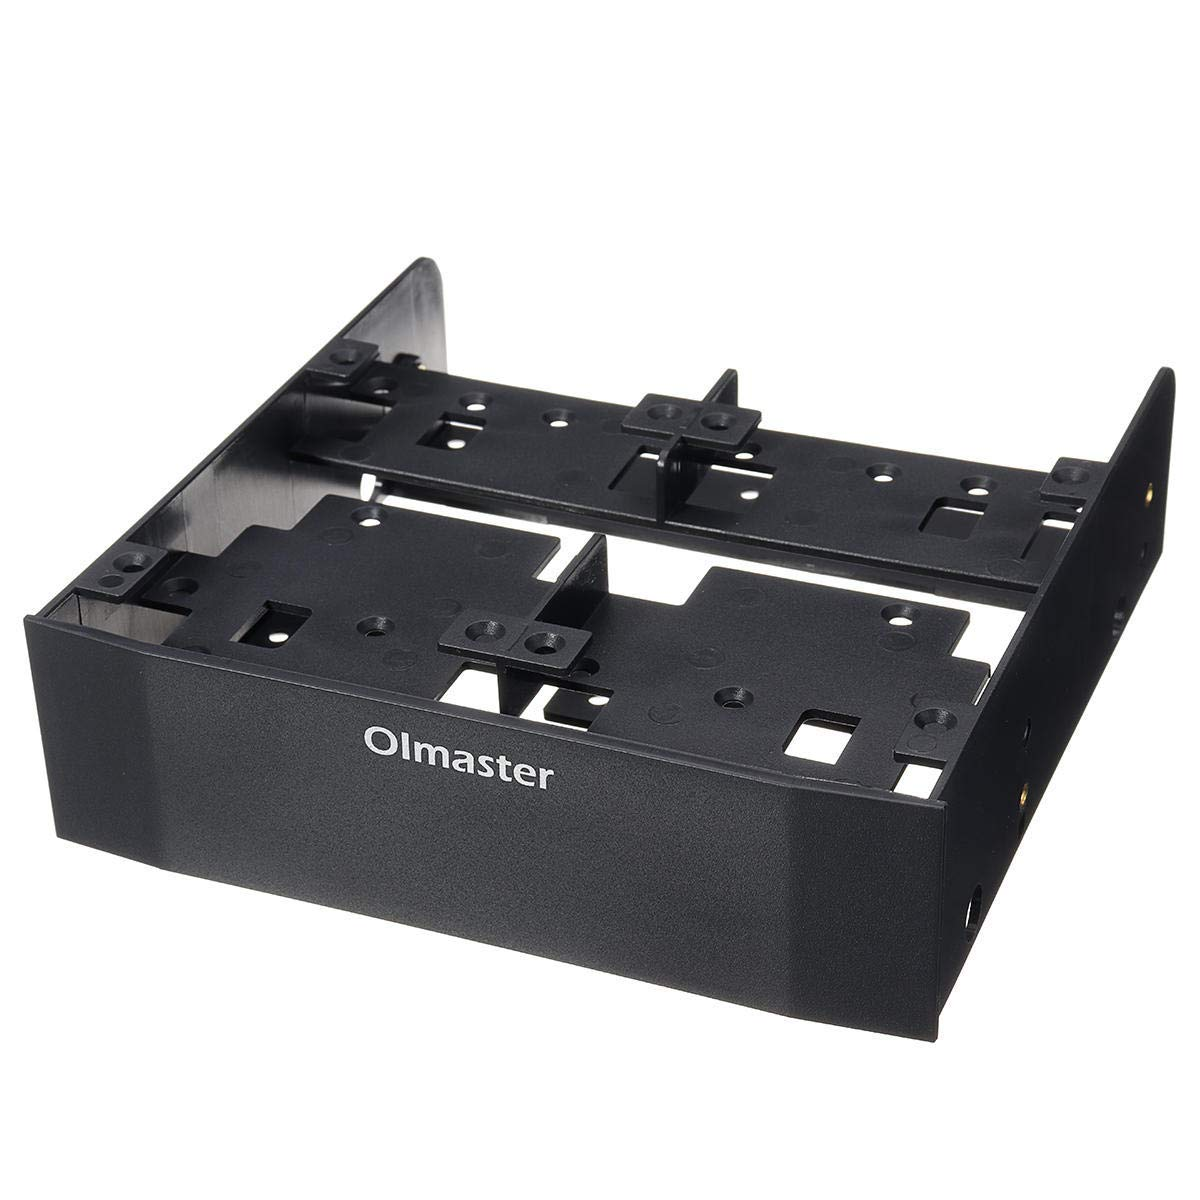 "5.25"" to 3.5"" Optical Drive Bay HDD Hard Drive Mounting Bracket Converter - Computer Components Optical Drives - 1 Hard Drive Conversion Rack, 3 Screws Pack"